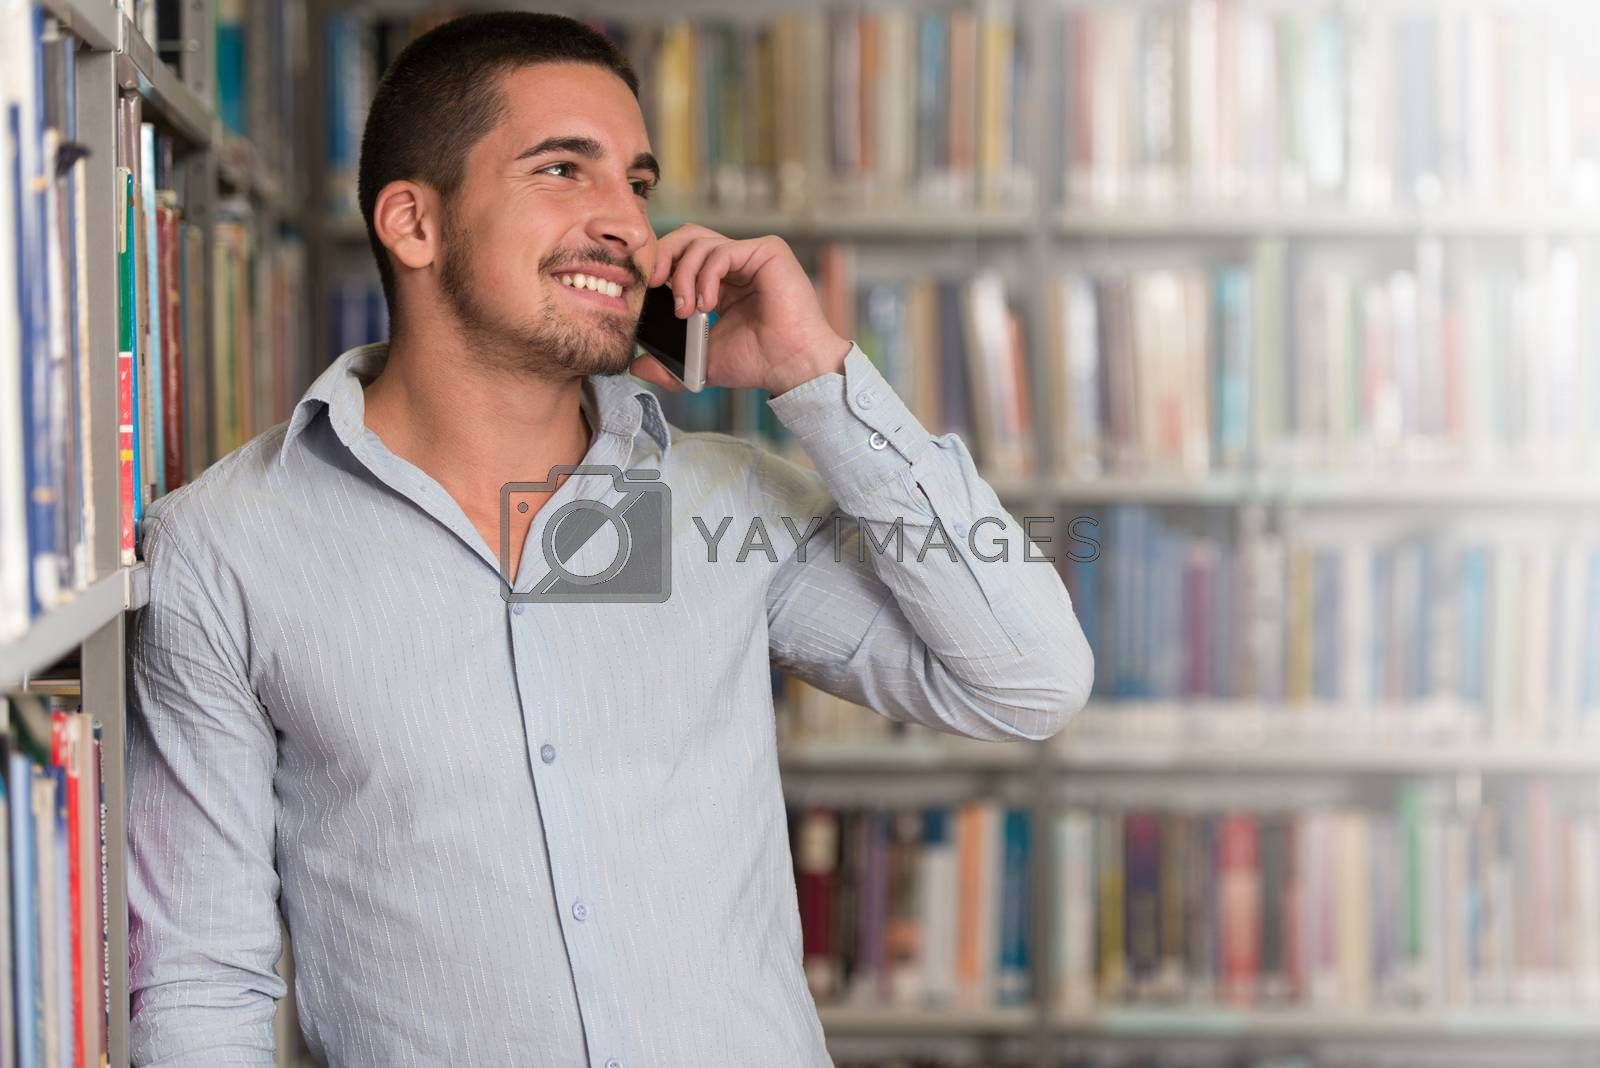 Male Student Talking On The Phone In Library - Shallow Depth Of Field